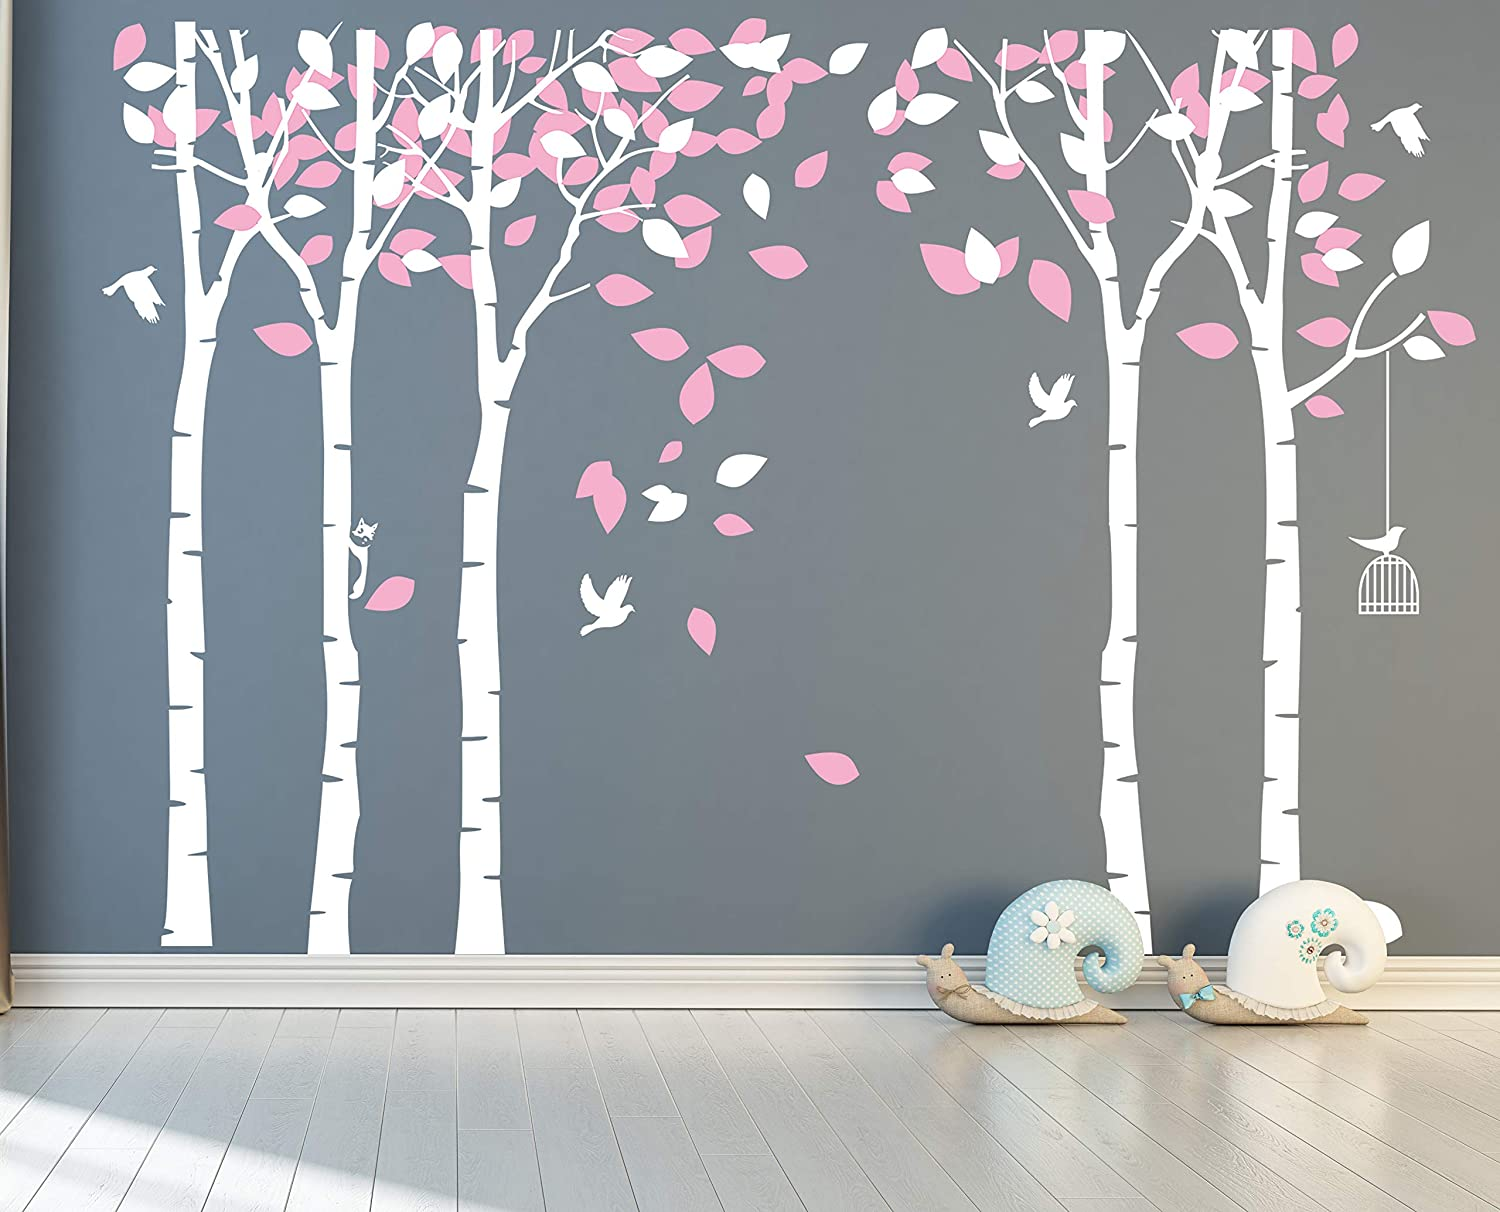 ANBER Giant Jungle Tree Wall Decal Removable Vinyl Sticker Mural Art Bedroom Nursery Baby Kids Rooms Wall Décor (White and Pink)